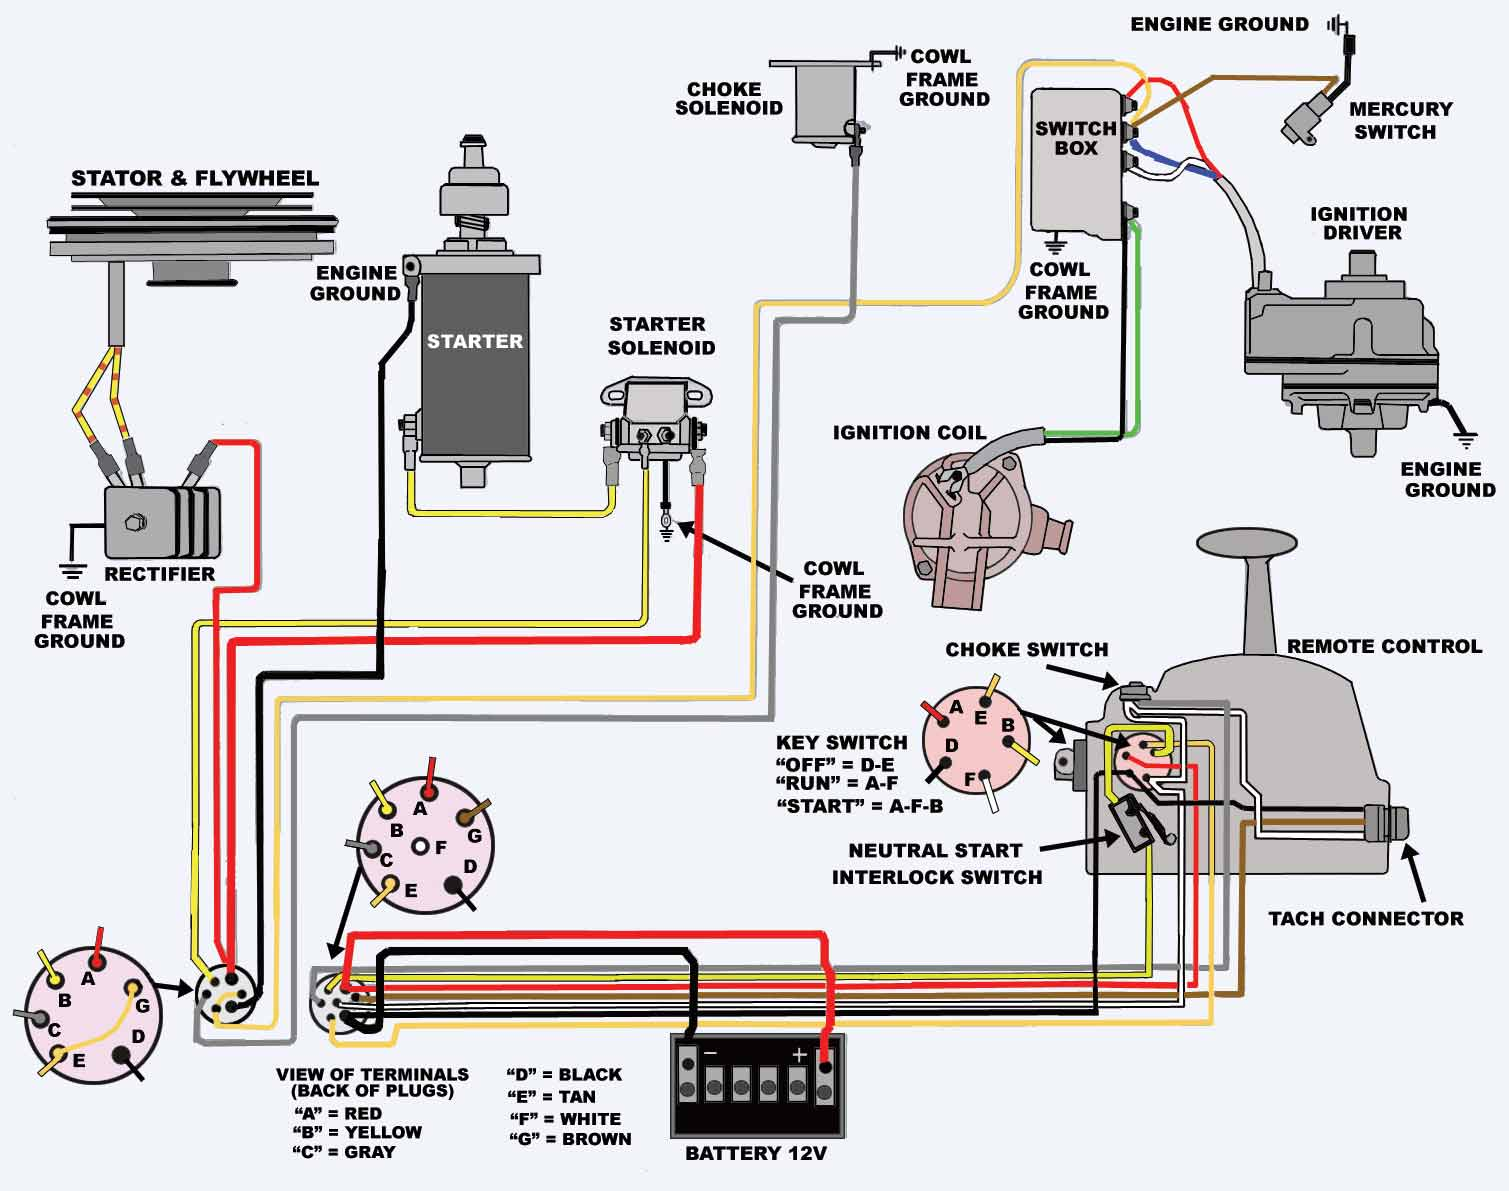 Mercury 800 Outboard Wiring Diagram Auto Electrical 1972 Cadillac Deville 1970 50hp Will Not Turn Off Page 1